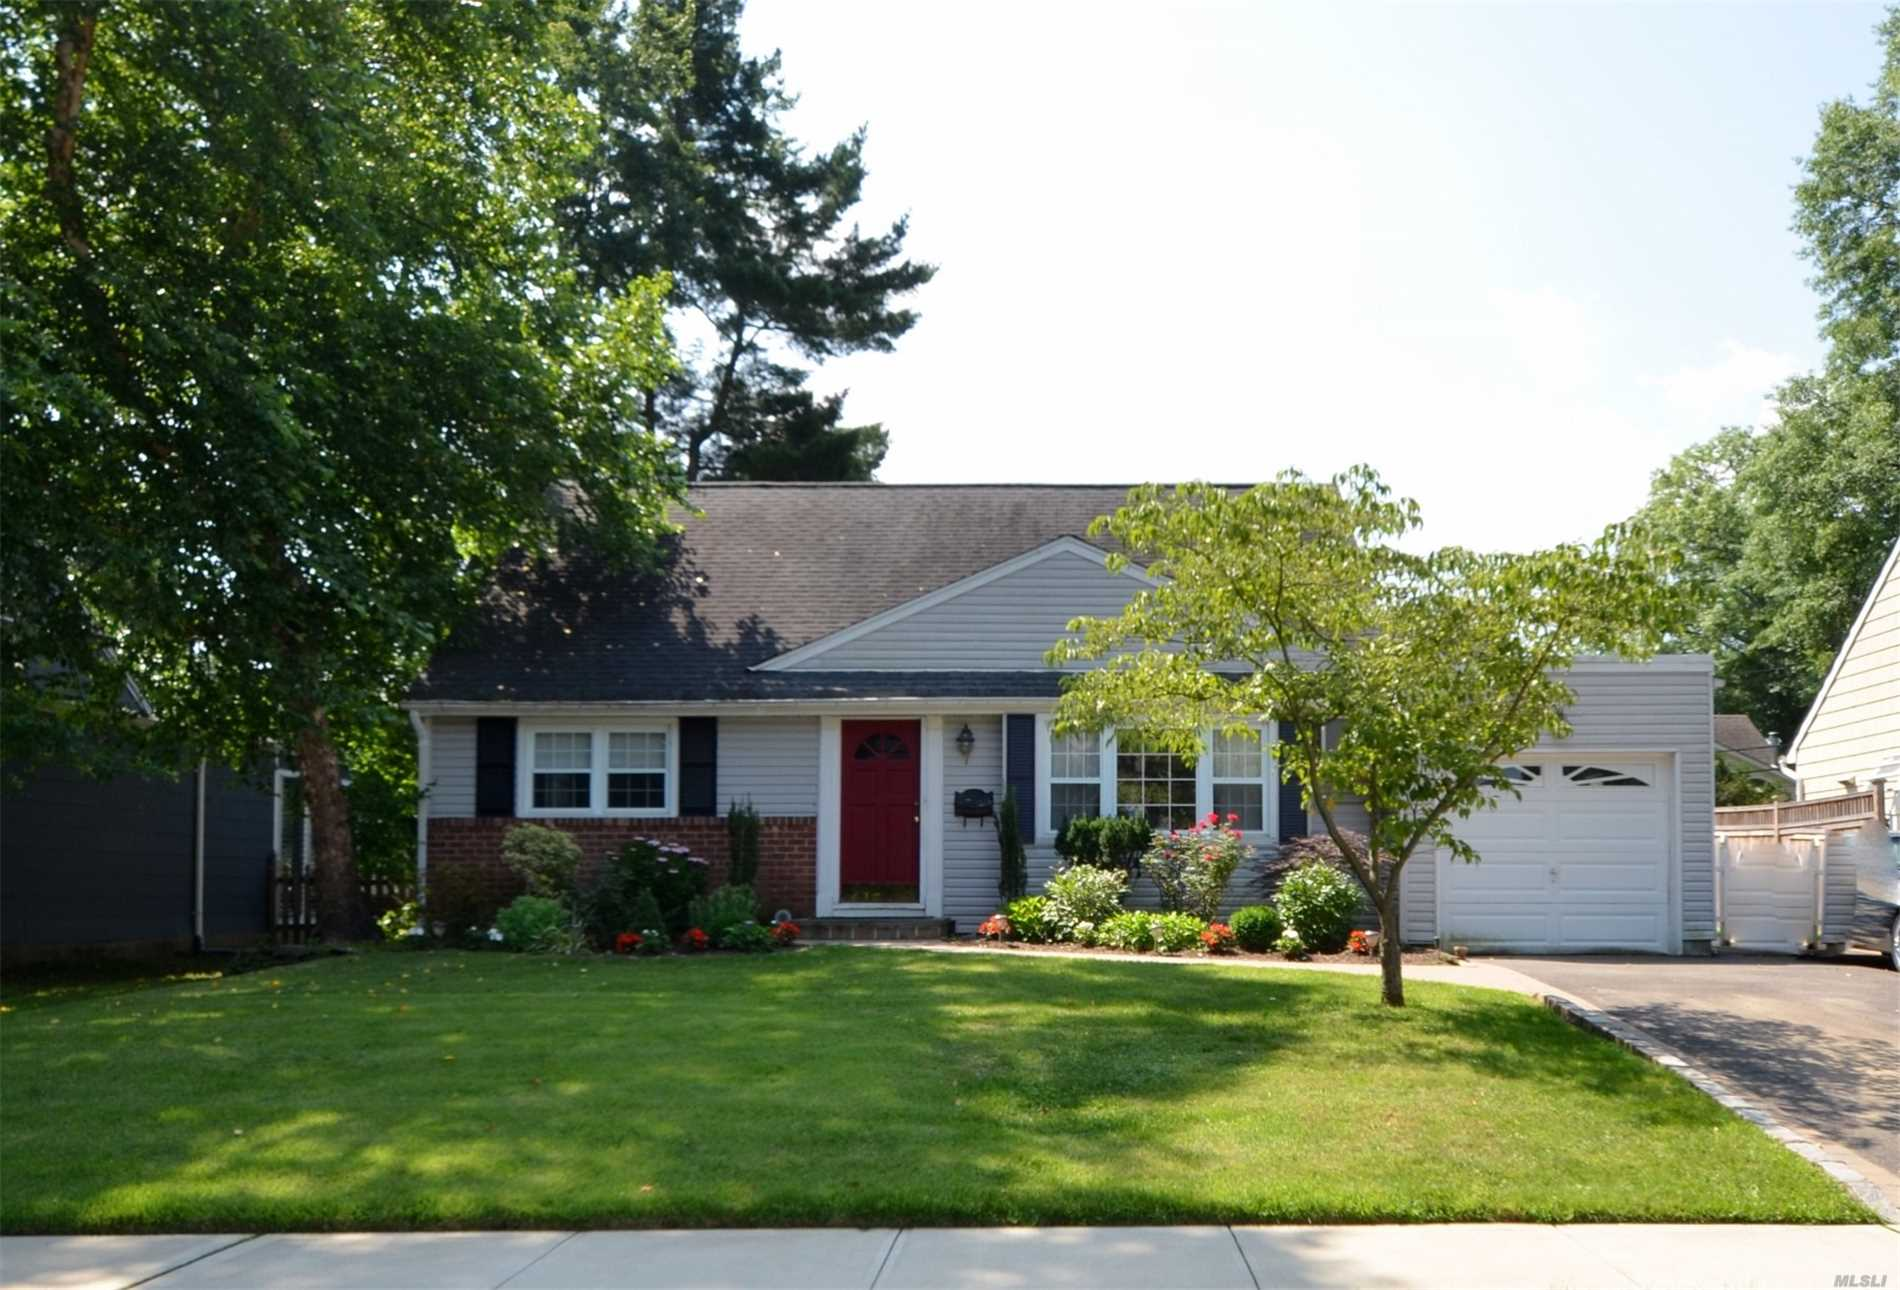 Move Right In To This 4 Bedroom Cape Cod With Great Living Space!! Formal Living Rm, Lg Eik, Fdr W/Skylights, Family Rm/Wood Burning Fireplace, 2 Full Baths. 2nd Floor; 2 Bdrms. Full Part Finished Basement W/Laundry & Mechanicals. Great Yard With Deck. Close To All. Must See!